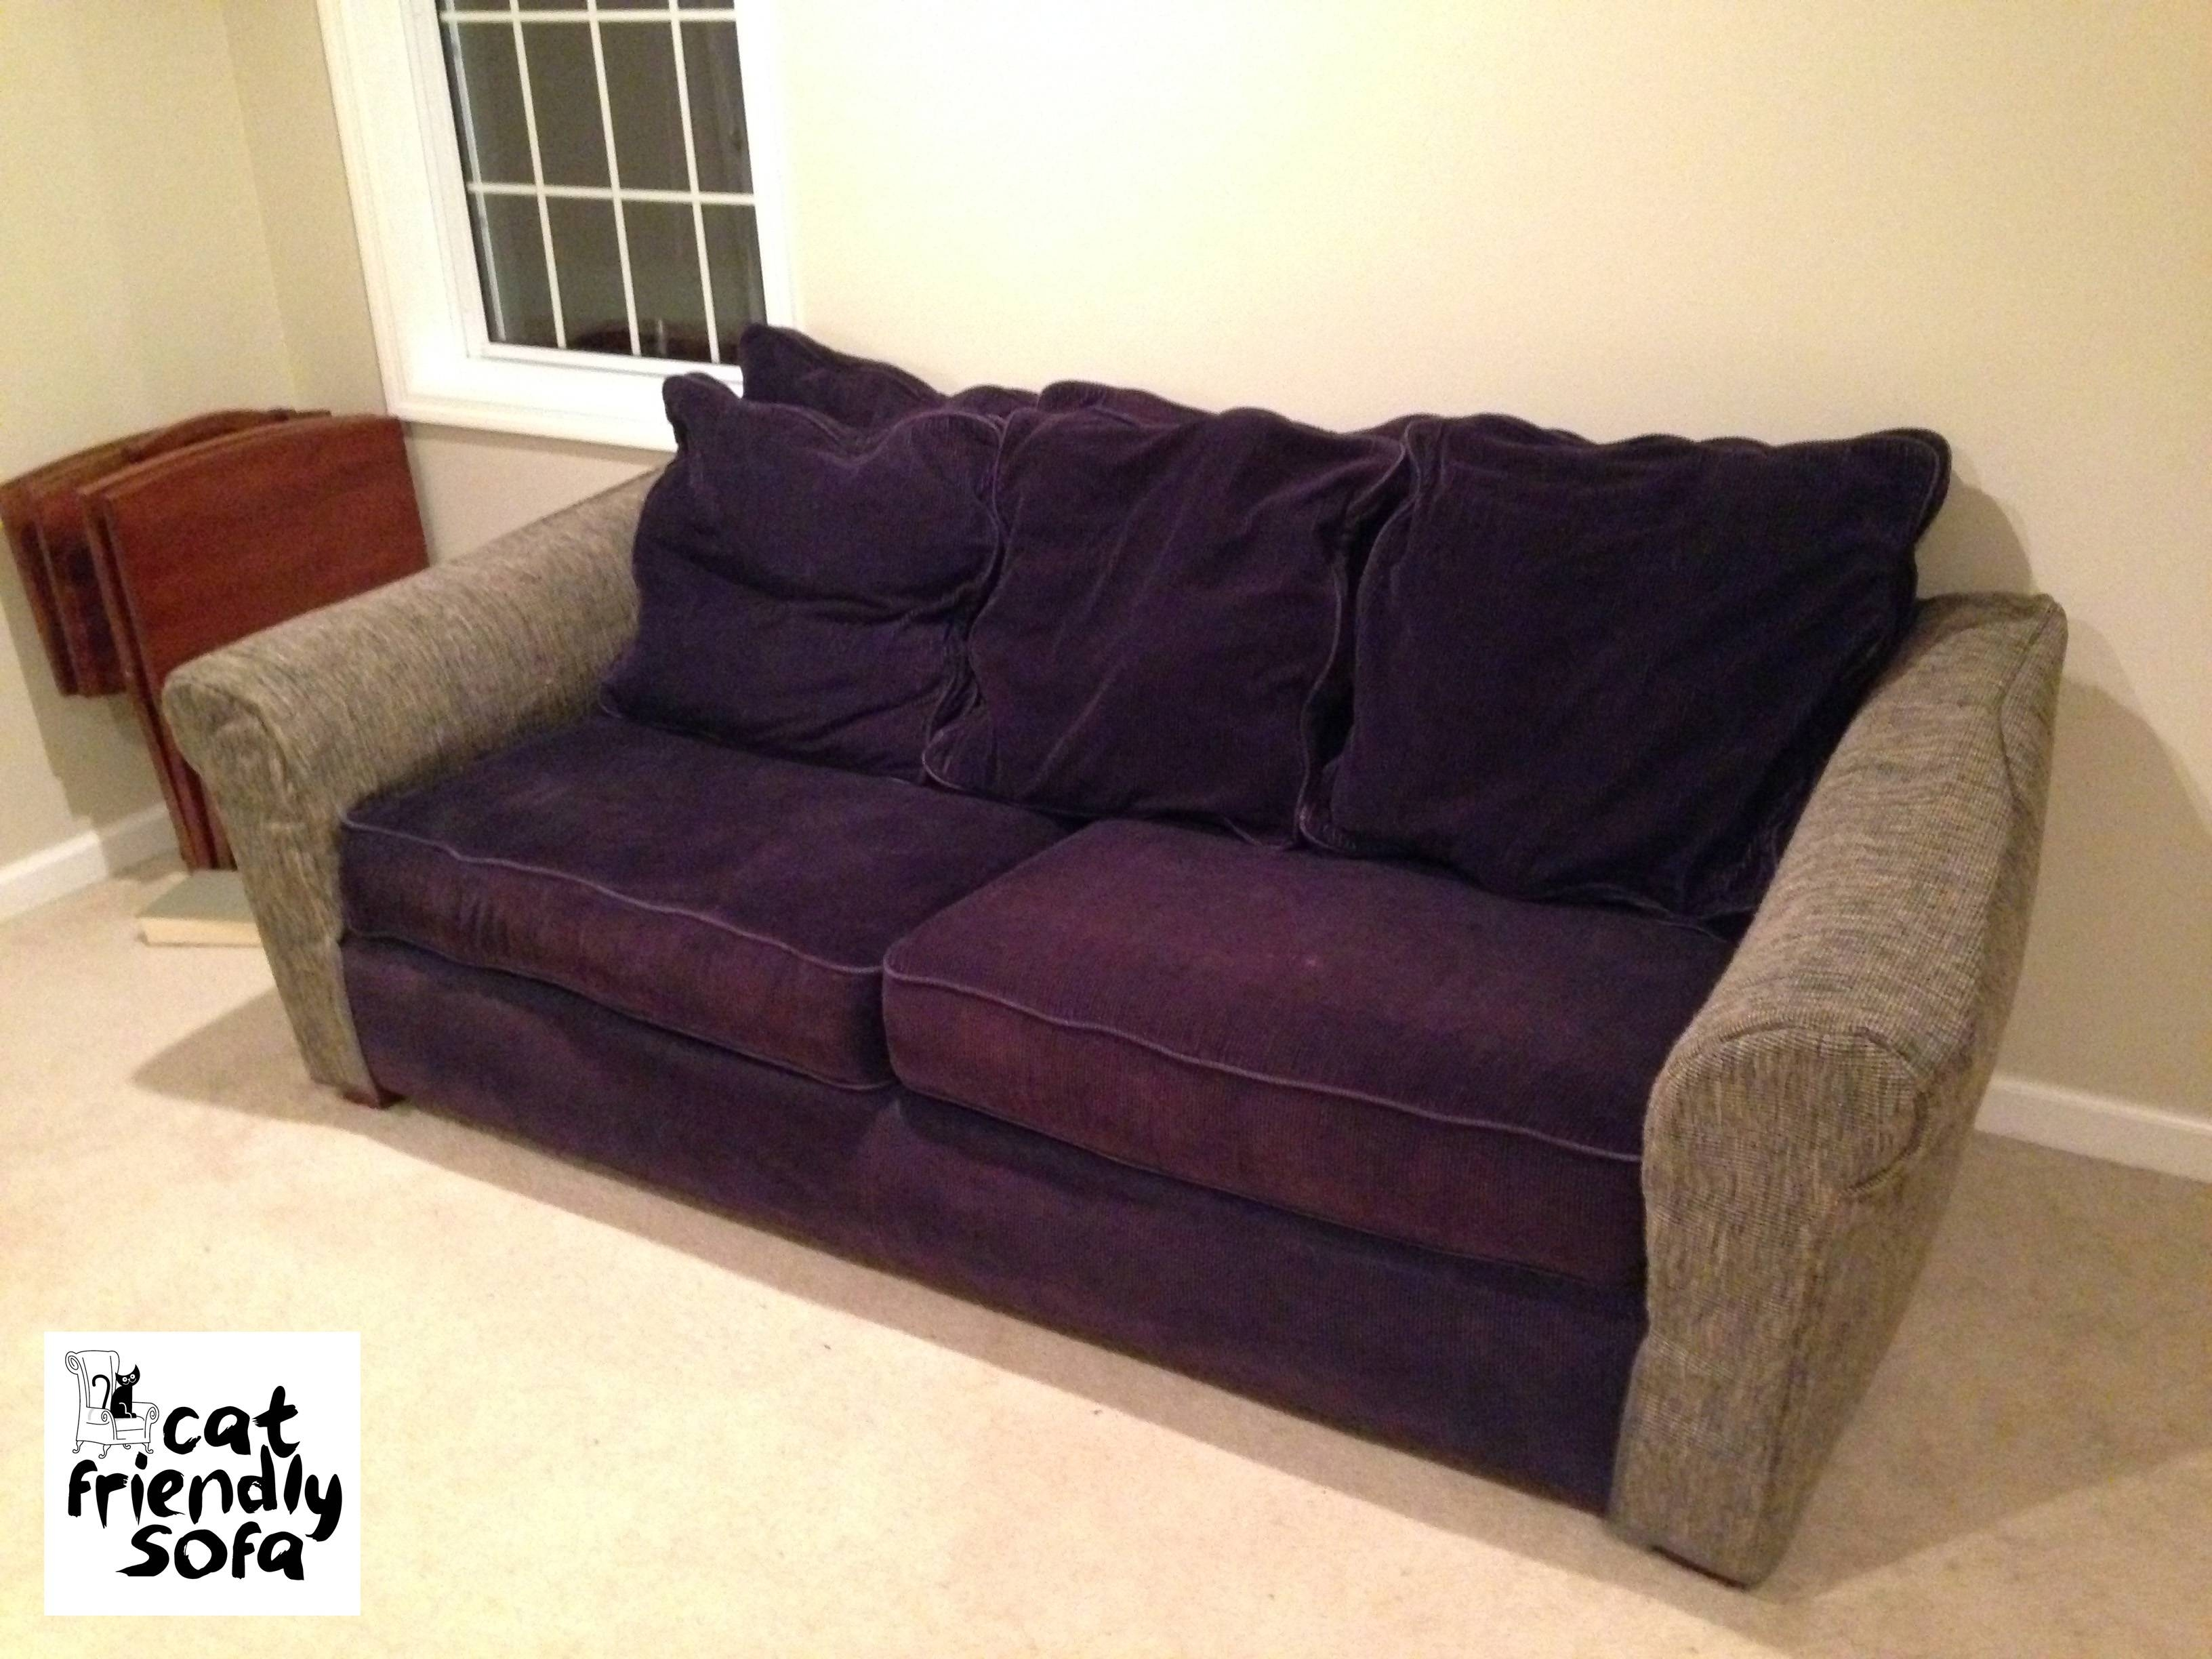 Tailored Slipcovers - Cat Friendly Sofa | Cat Friendly Sofa regarding Arm Covers for Sofas (Image 29 of 30)